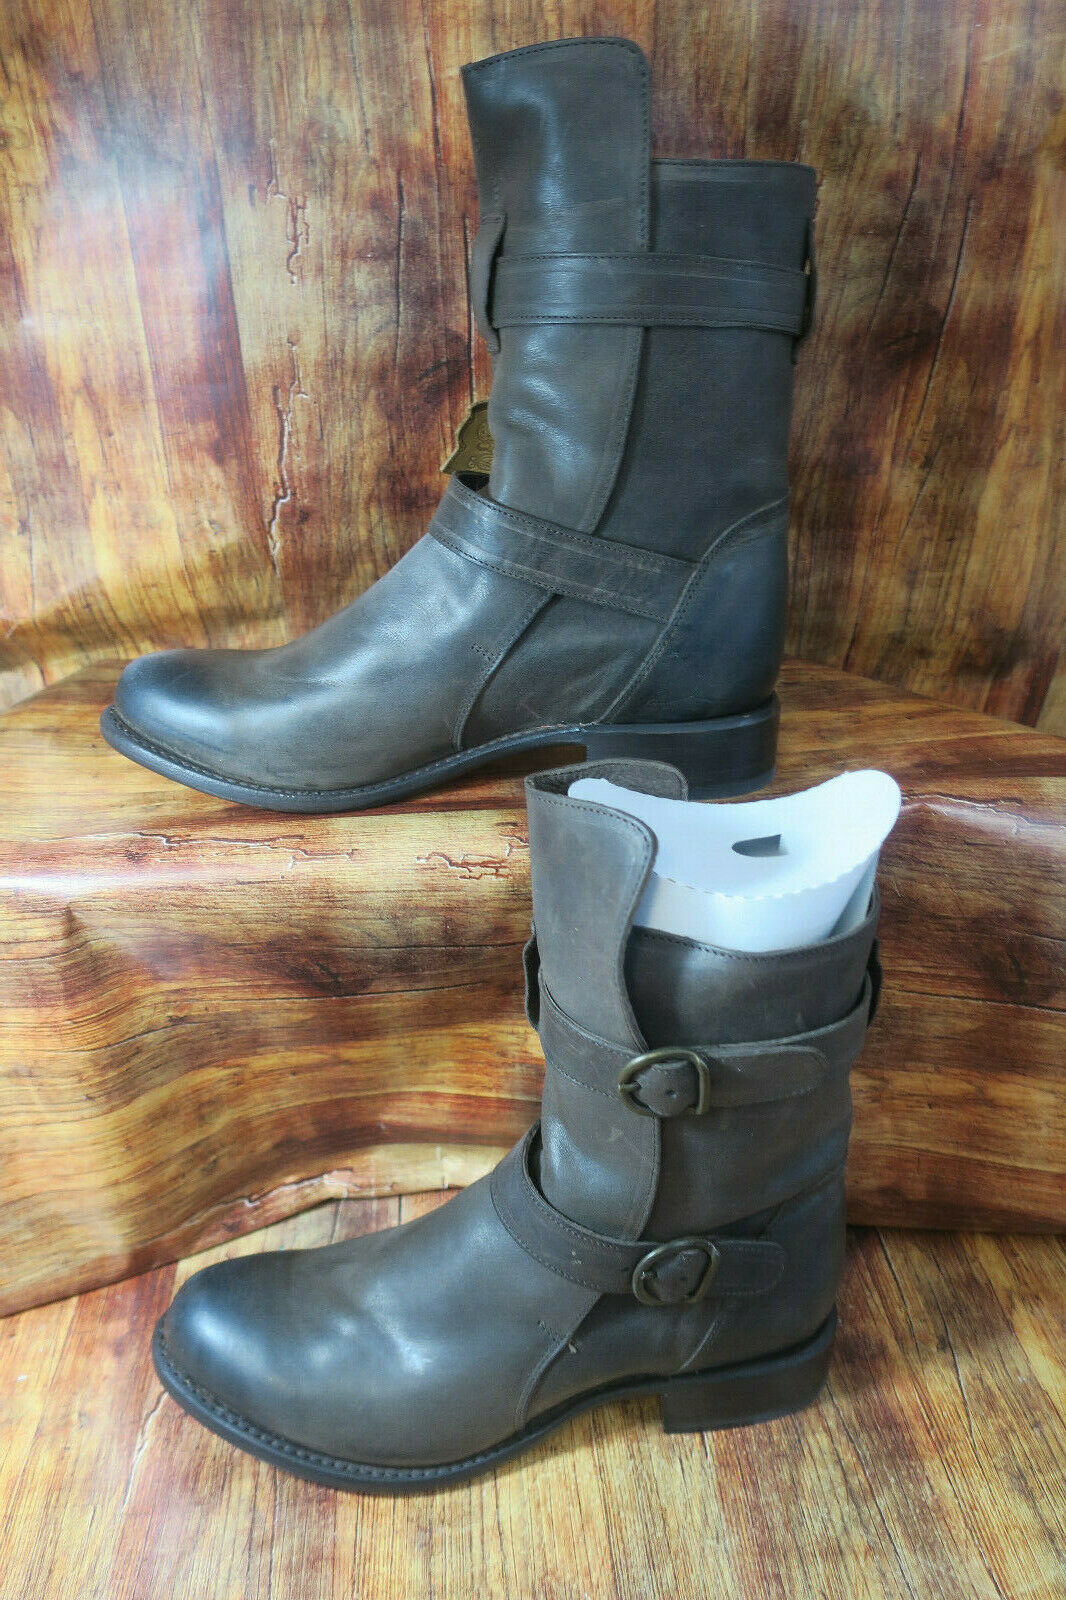 SN1300 SN1300 SN1300 Brooklyn Double Buckle Pull on Fashion Leather Boot By Sonora 10 B  1418 880658